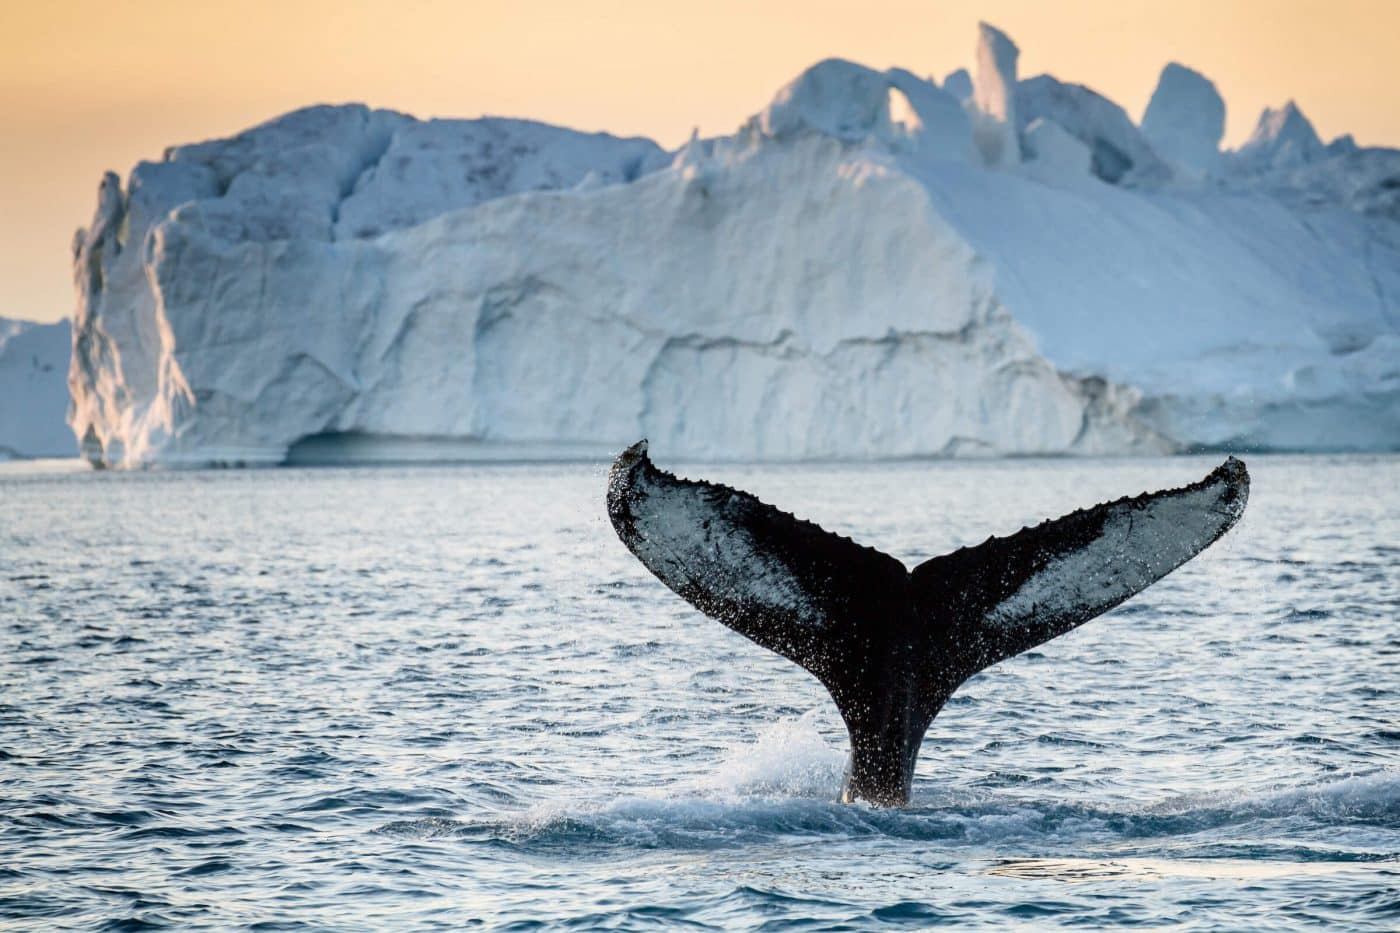 Humpback whale in front of big iceberg in Greenland, by Julie Skotte